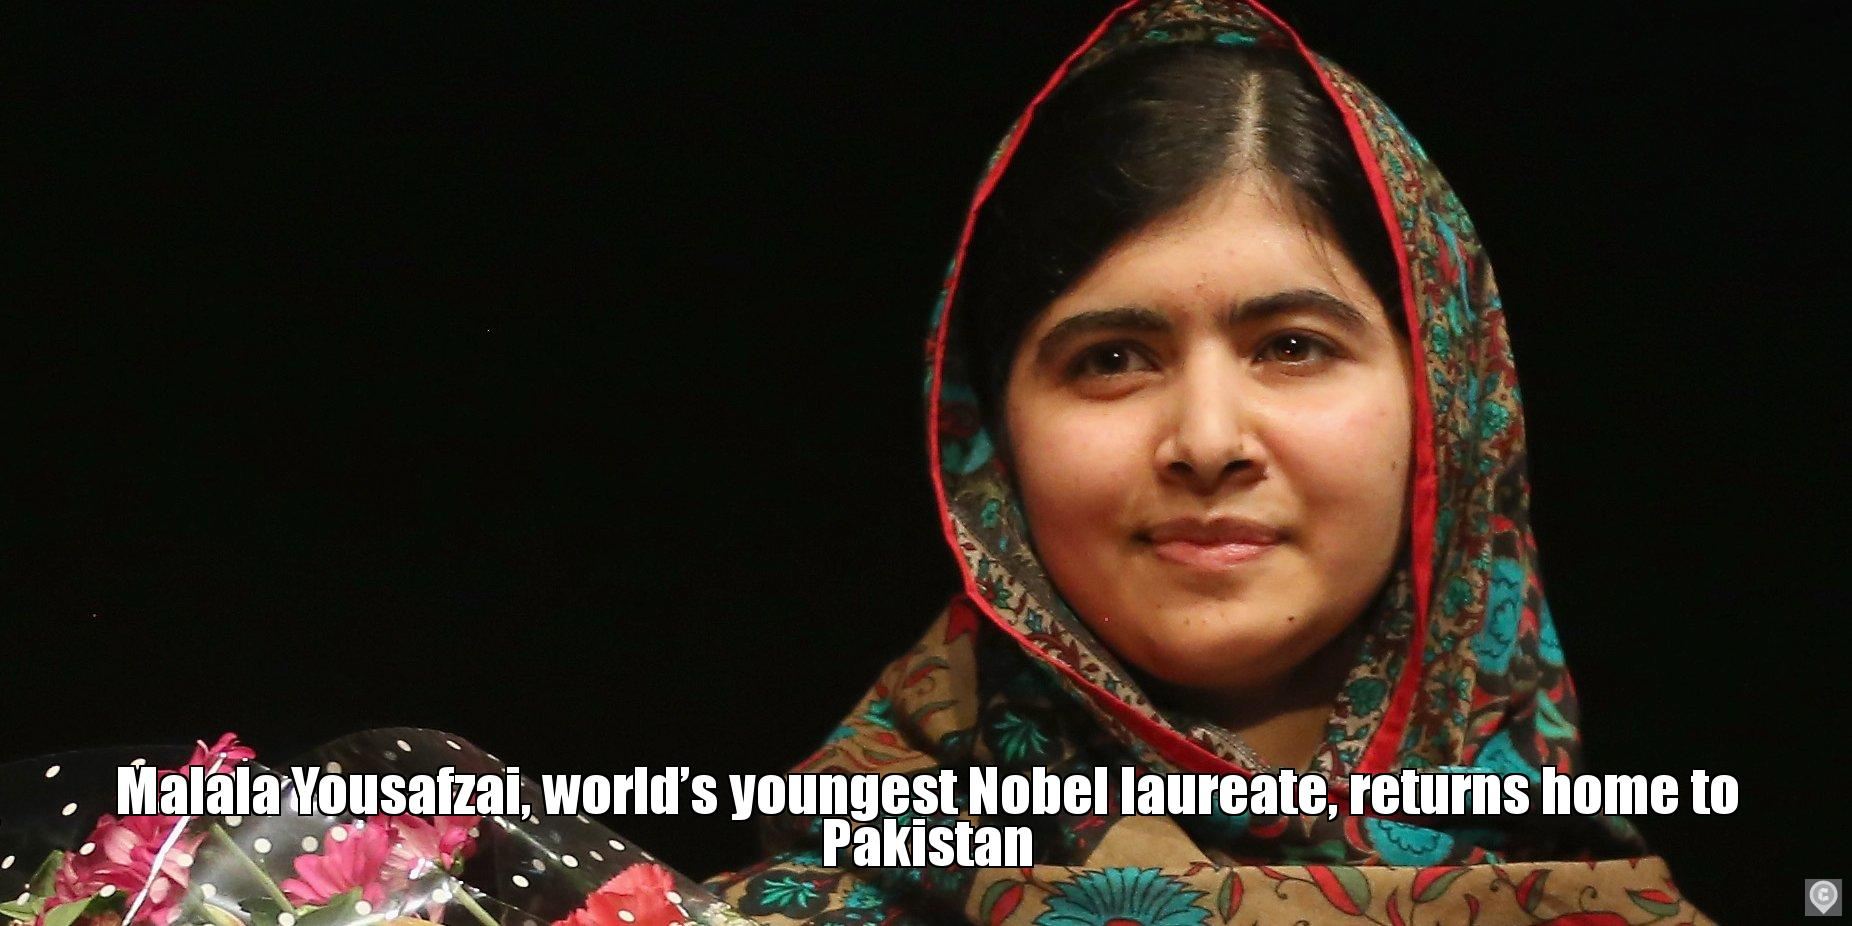 Malala Yousafzai, worlds youngest Nobel laureate, returns home to Pakistan